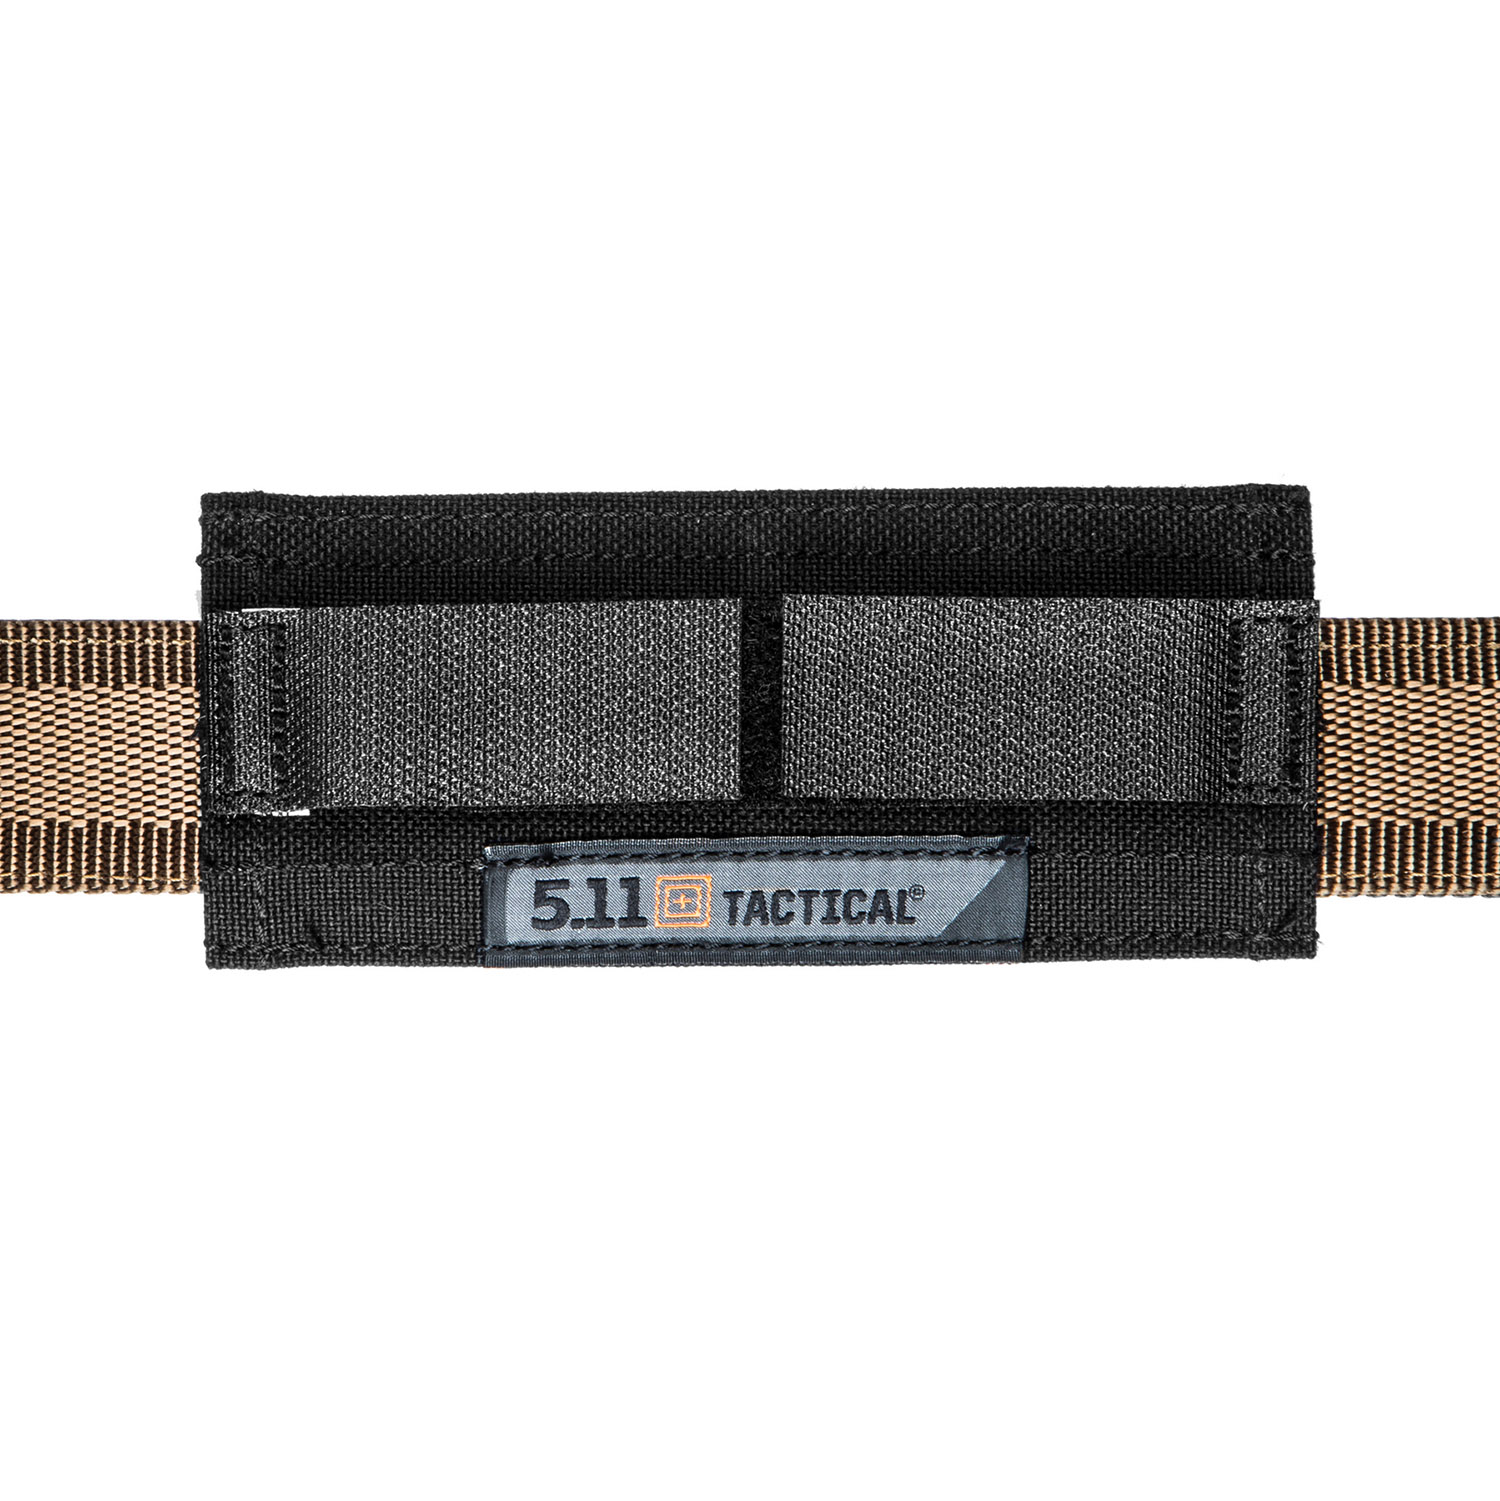 5.11 Tactical Holster Belt Sleeve